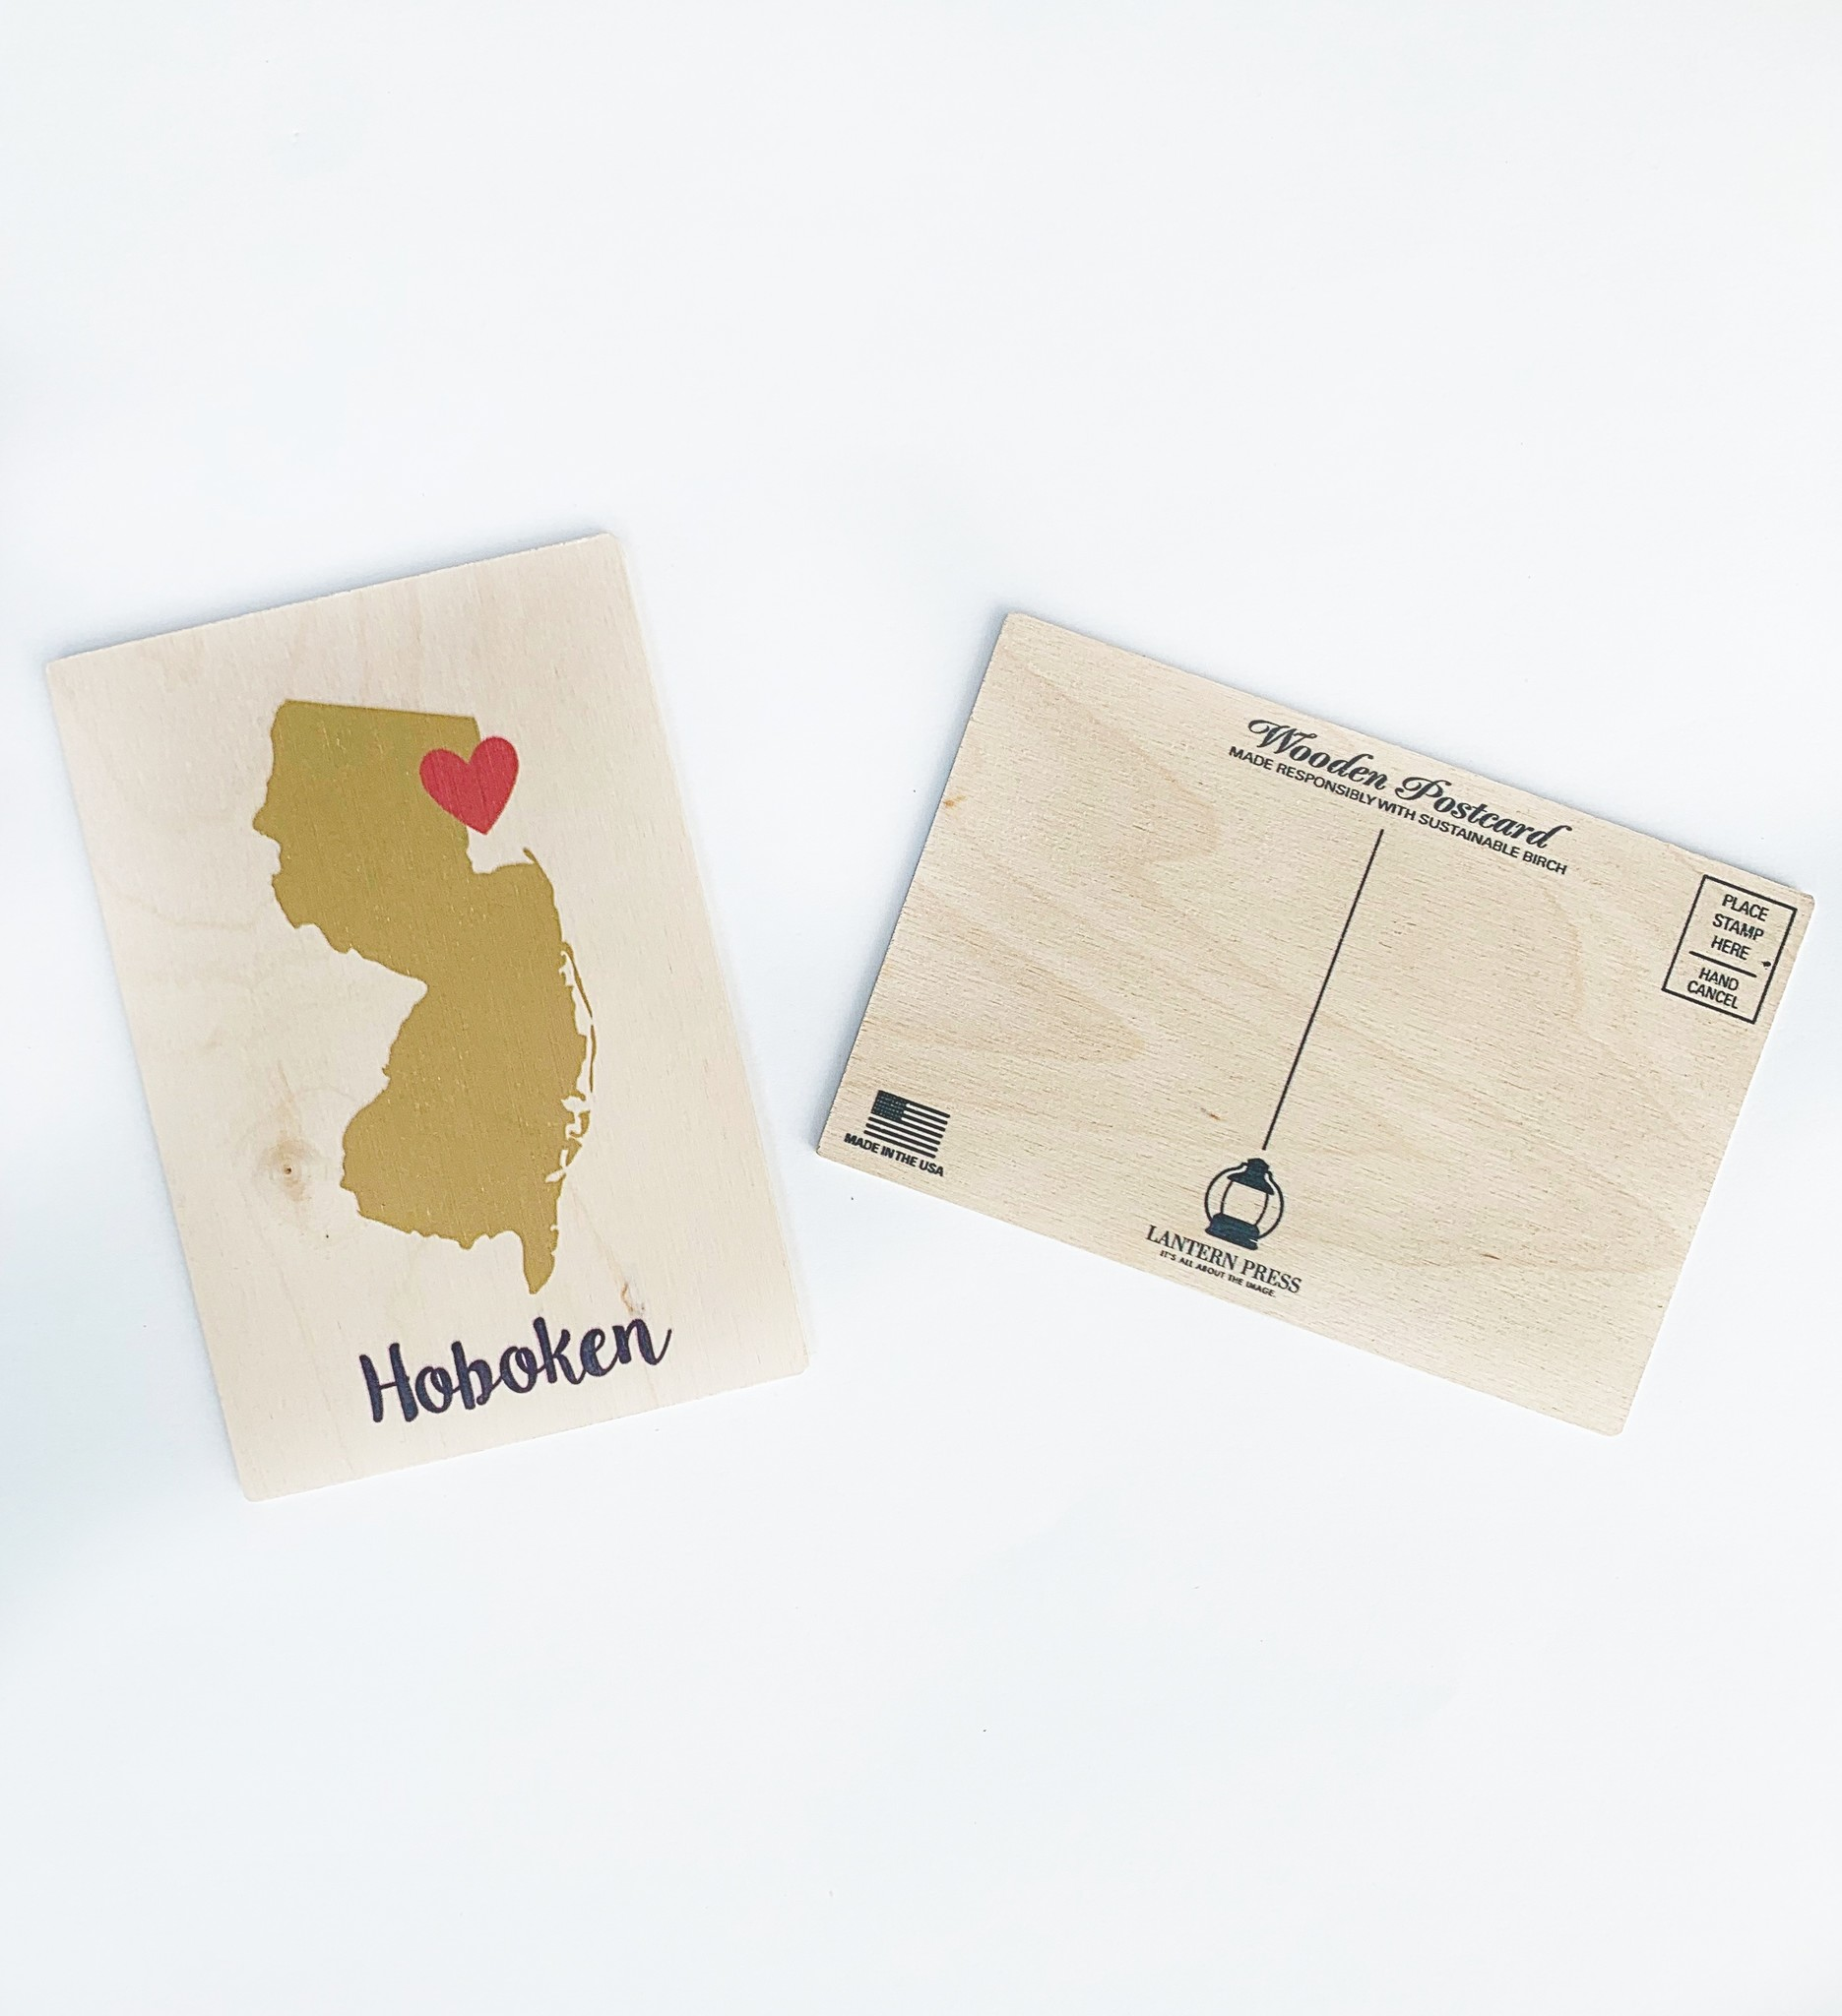 Lantern Press Hoboken State Outline & Heart (Gold & Red) 4x6 Wooden Postcard